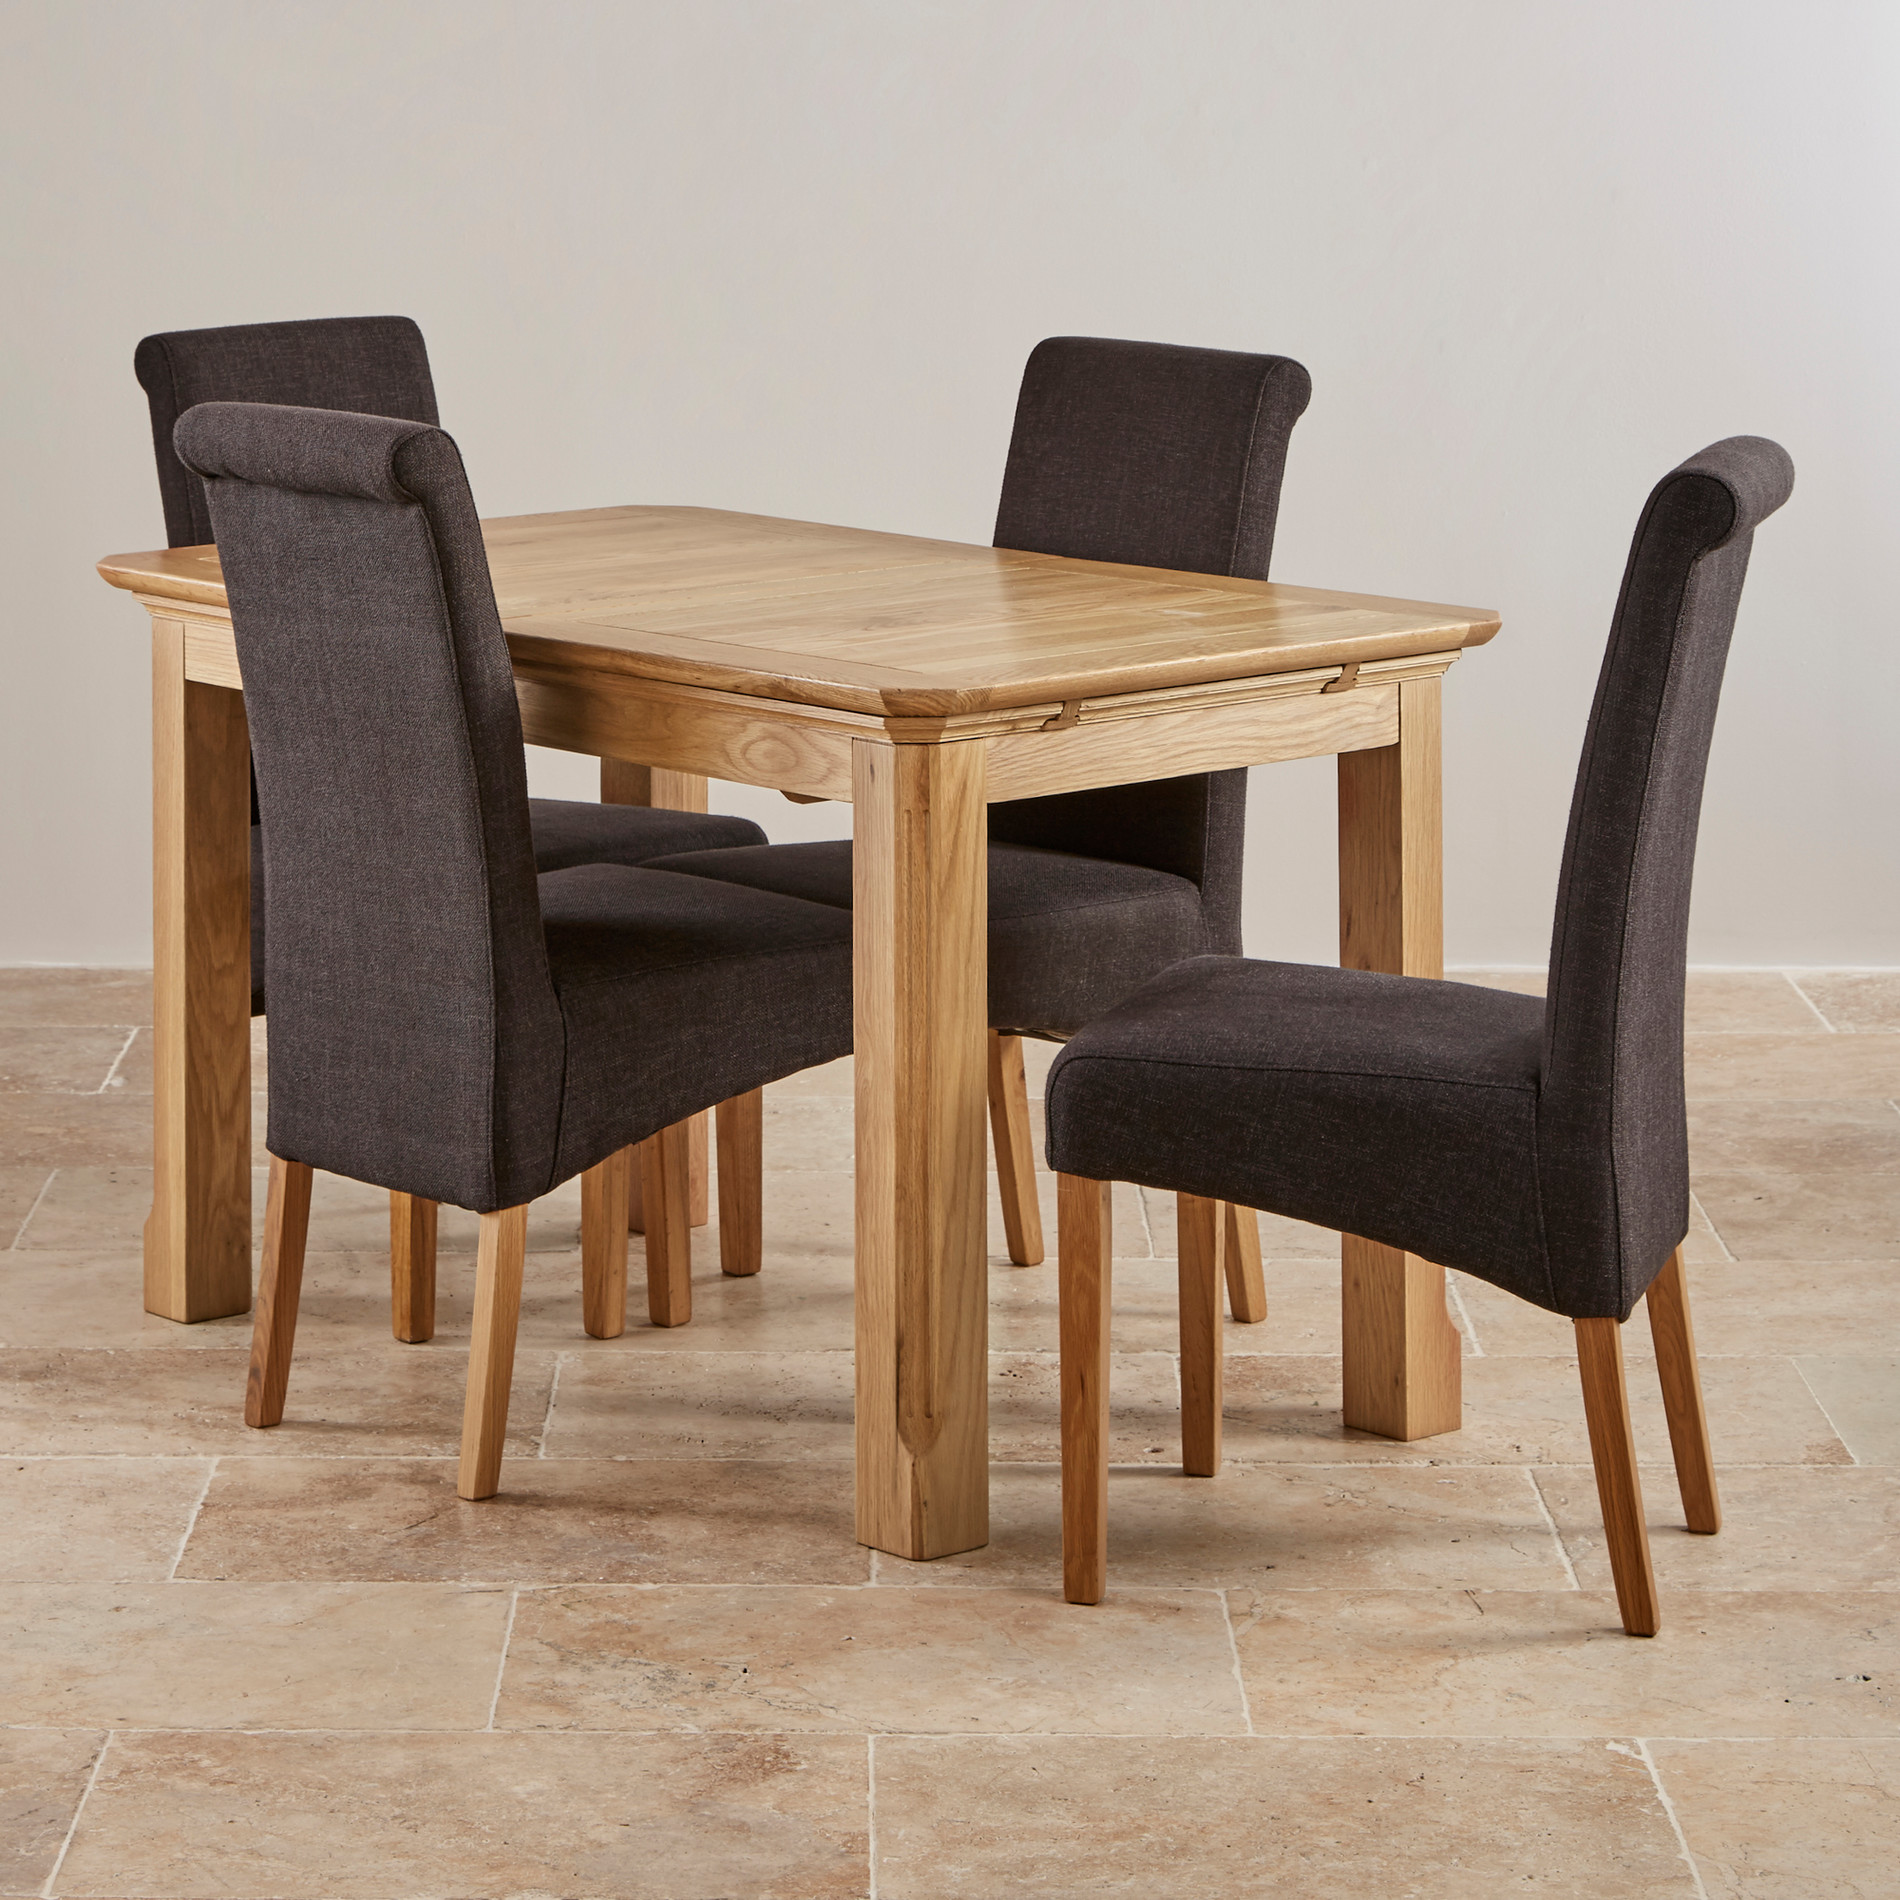 edinburgh natural solid oak dining set 4ft extending